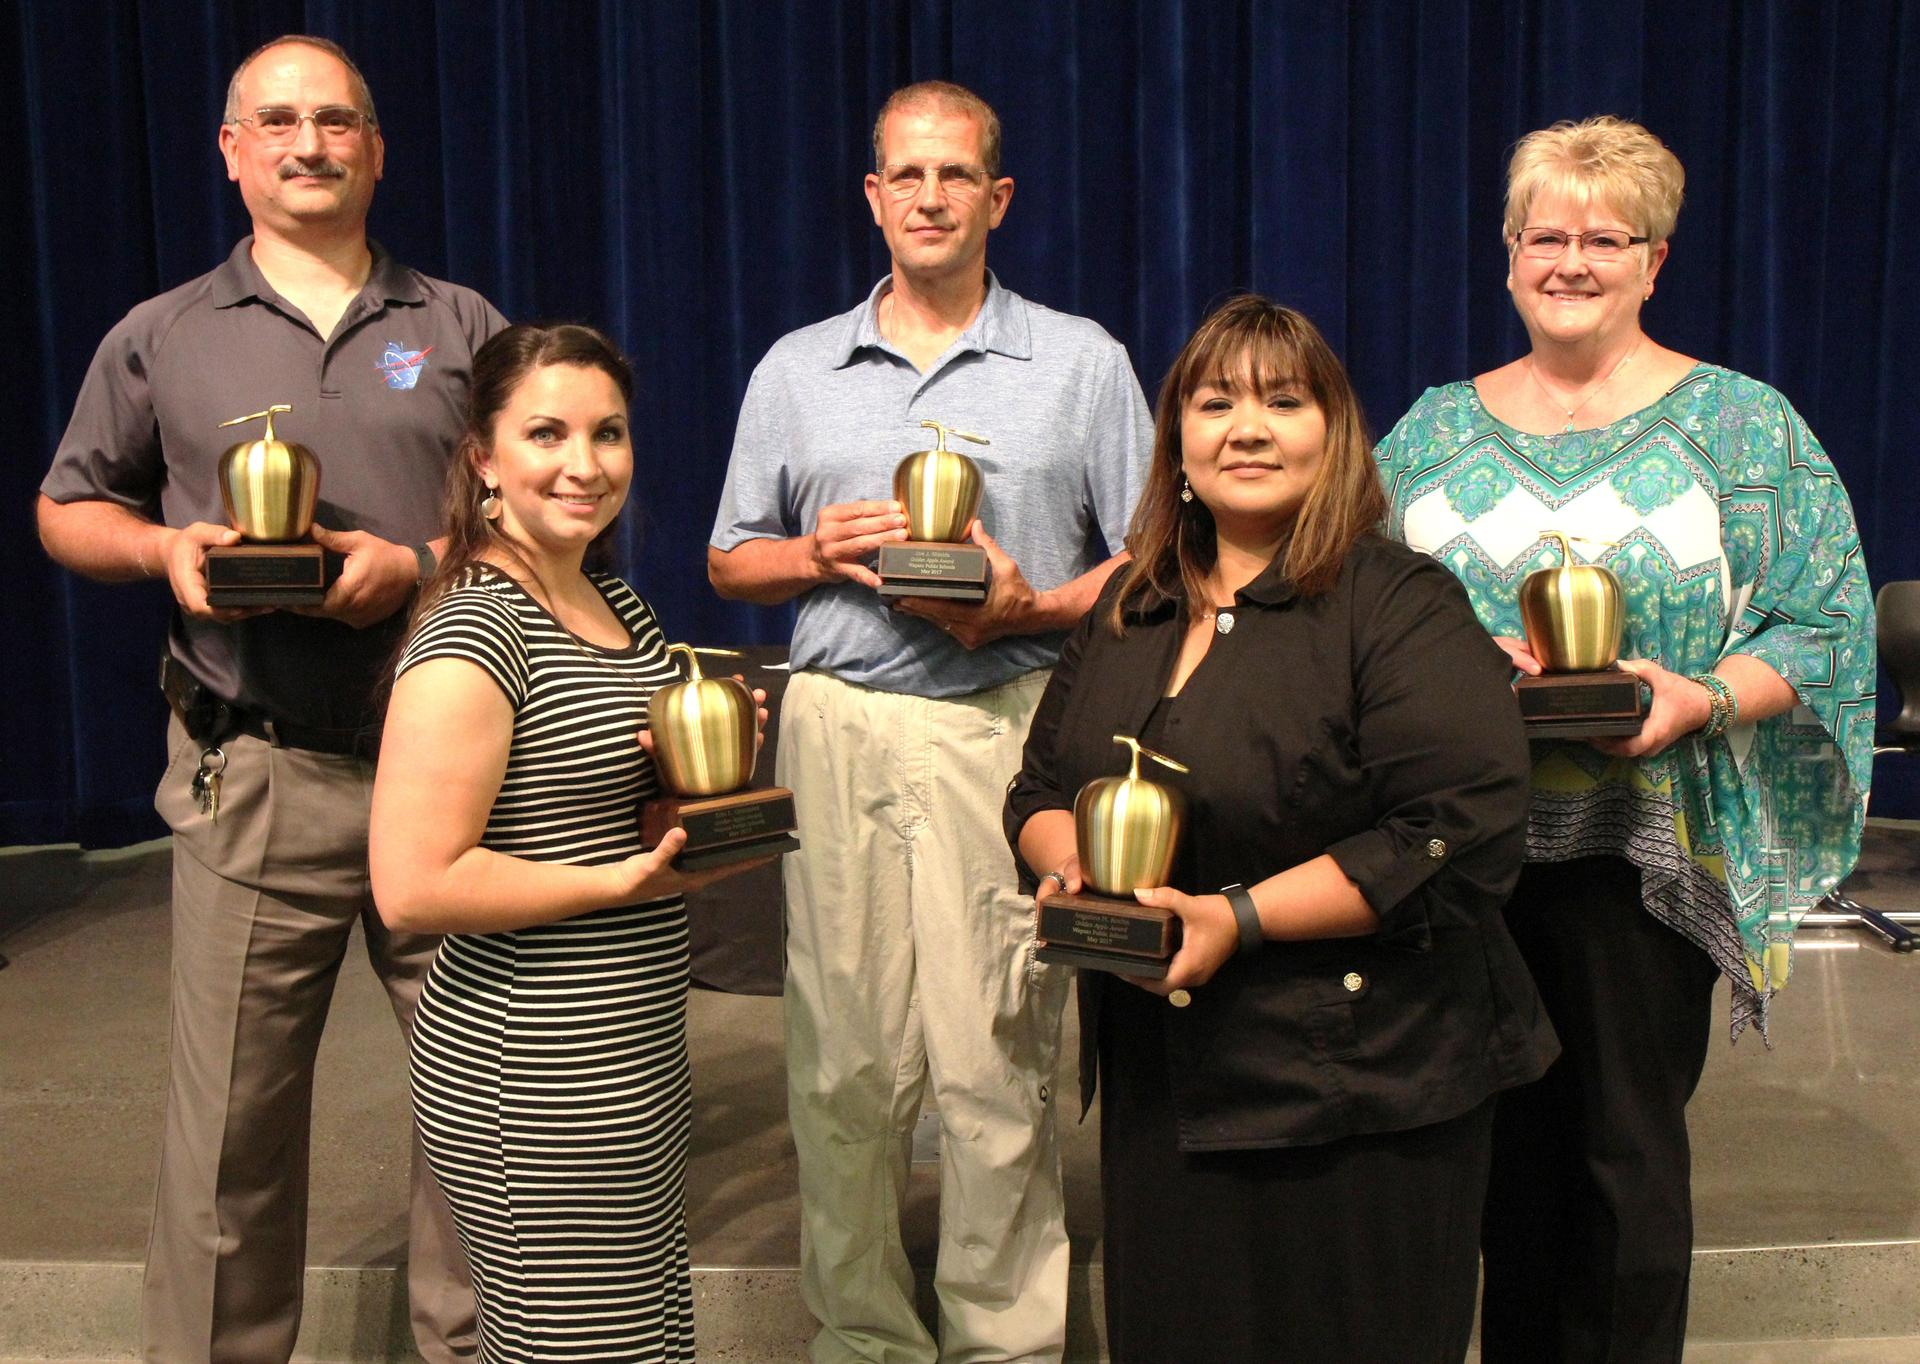 2016-2017 Golden Apple Award recipients pose for picture